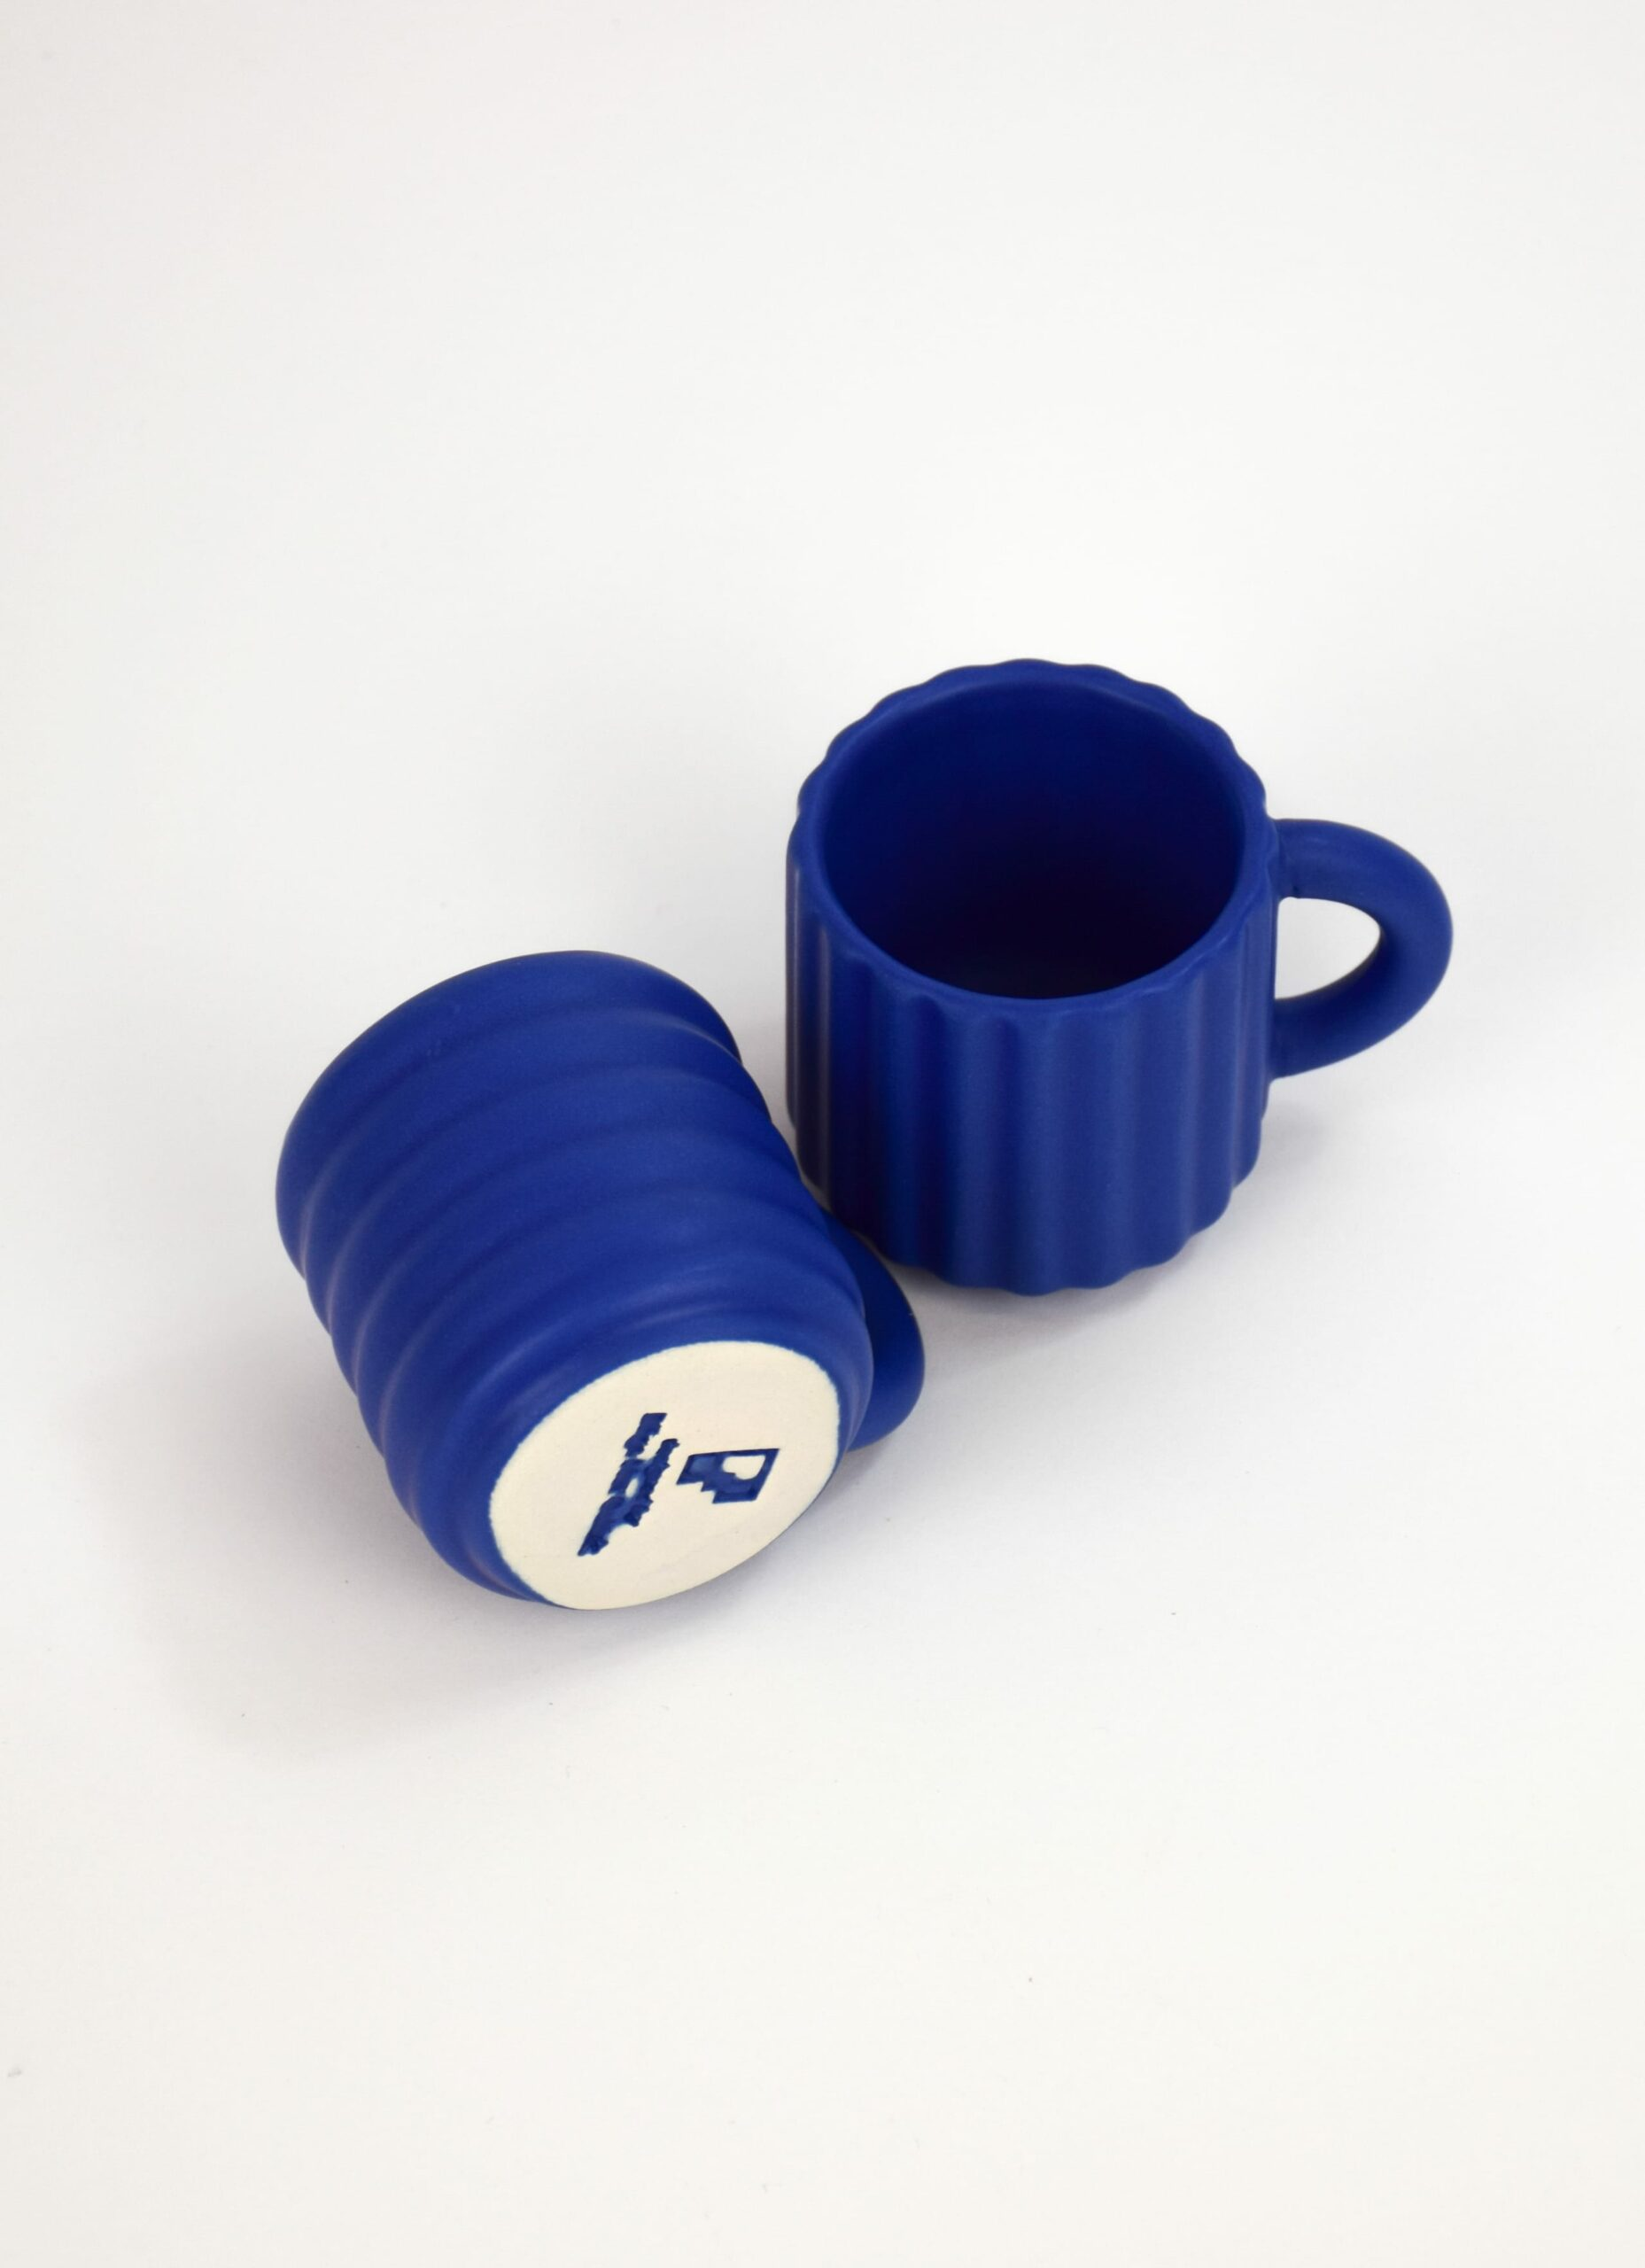 Form and Seek - Ripple Espresso Cups - Set of Two - Cobalt